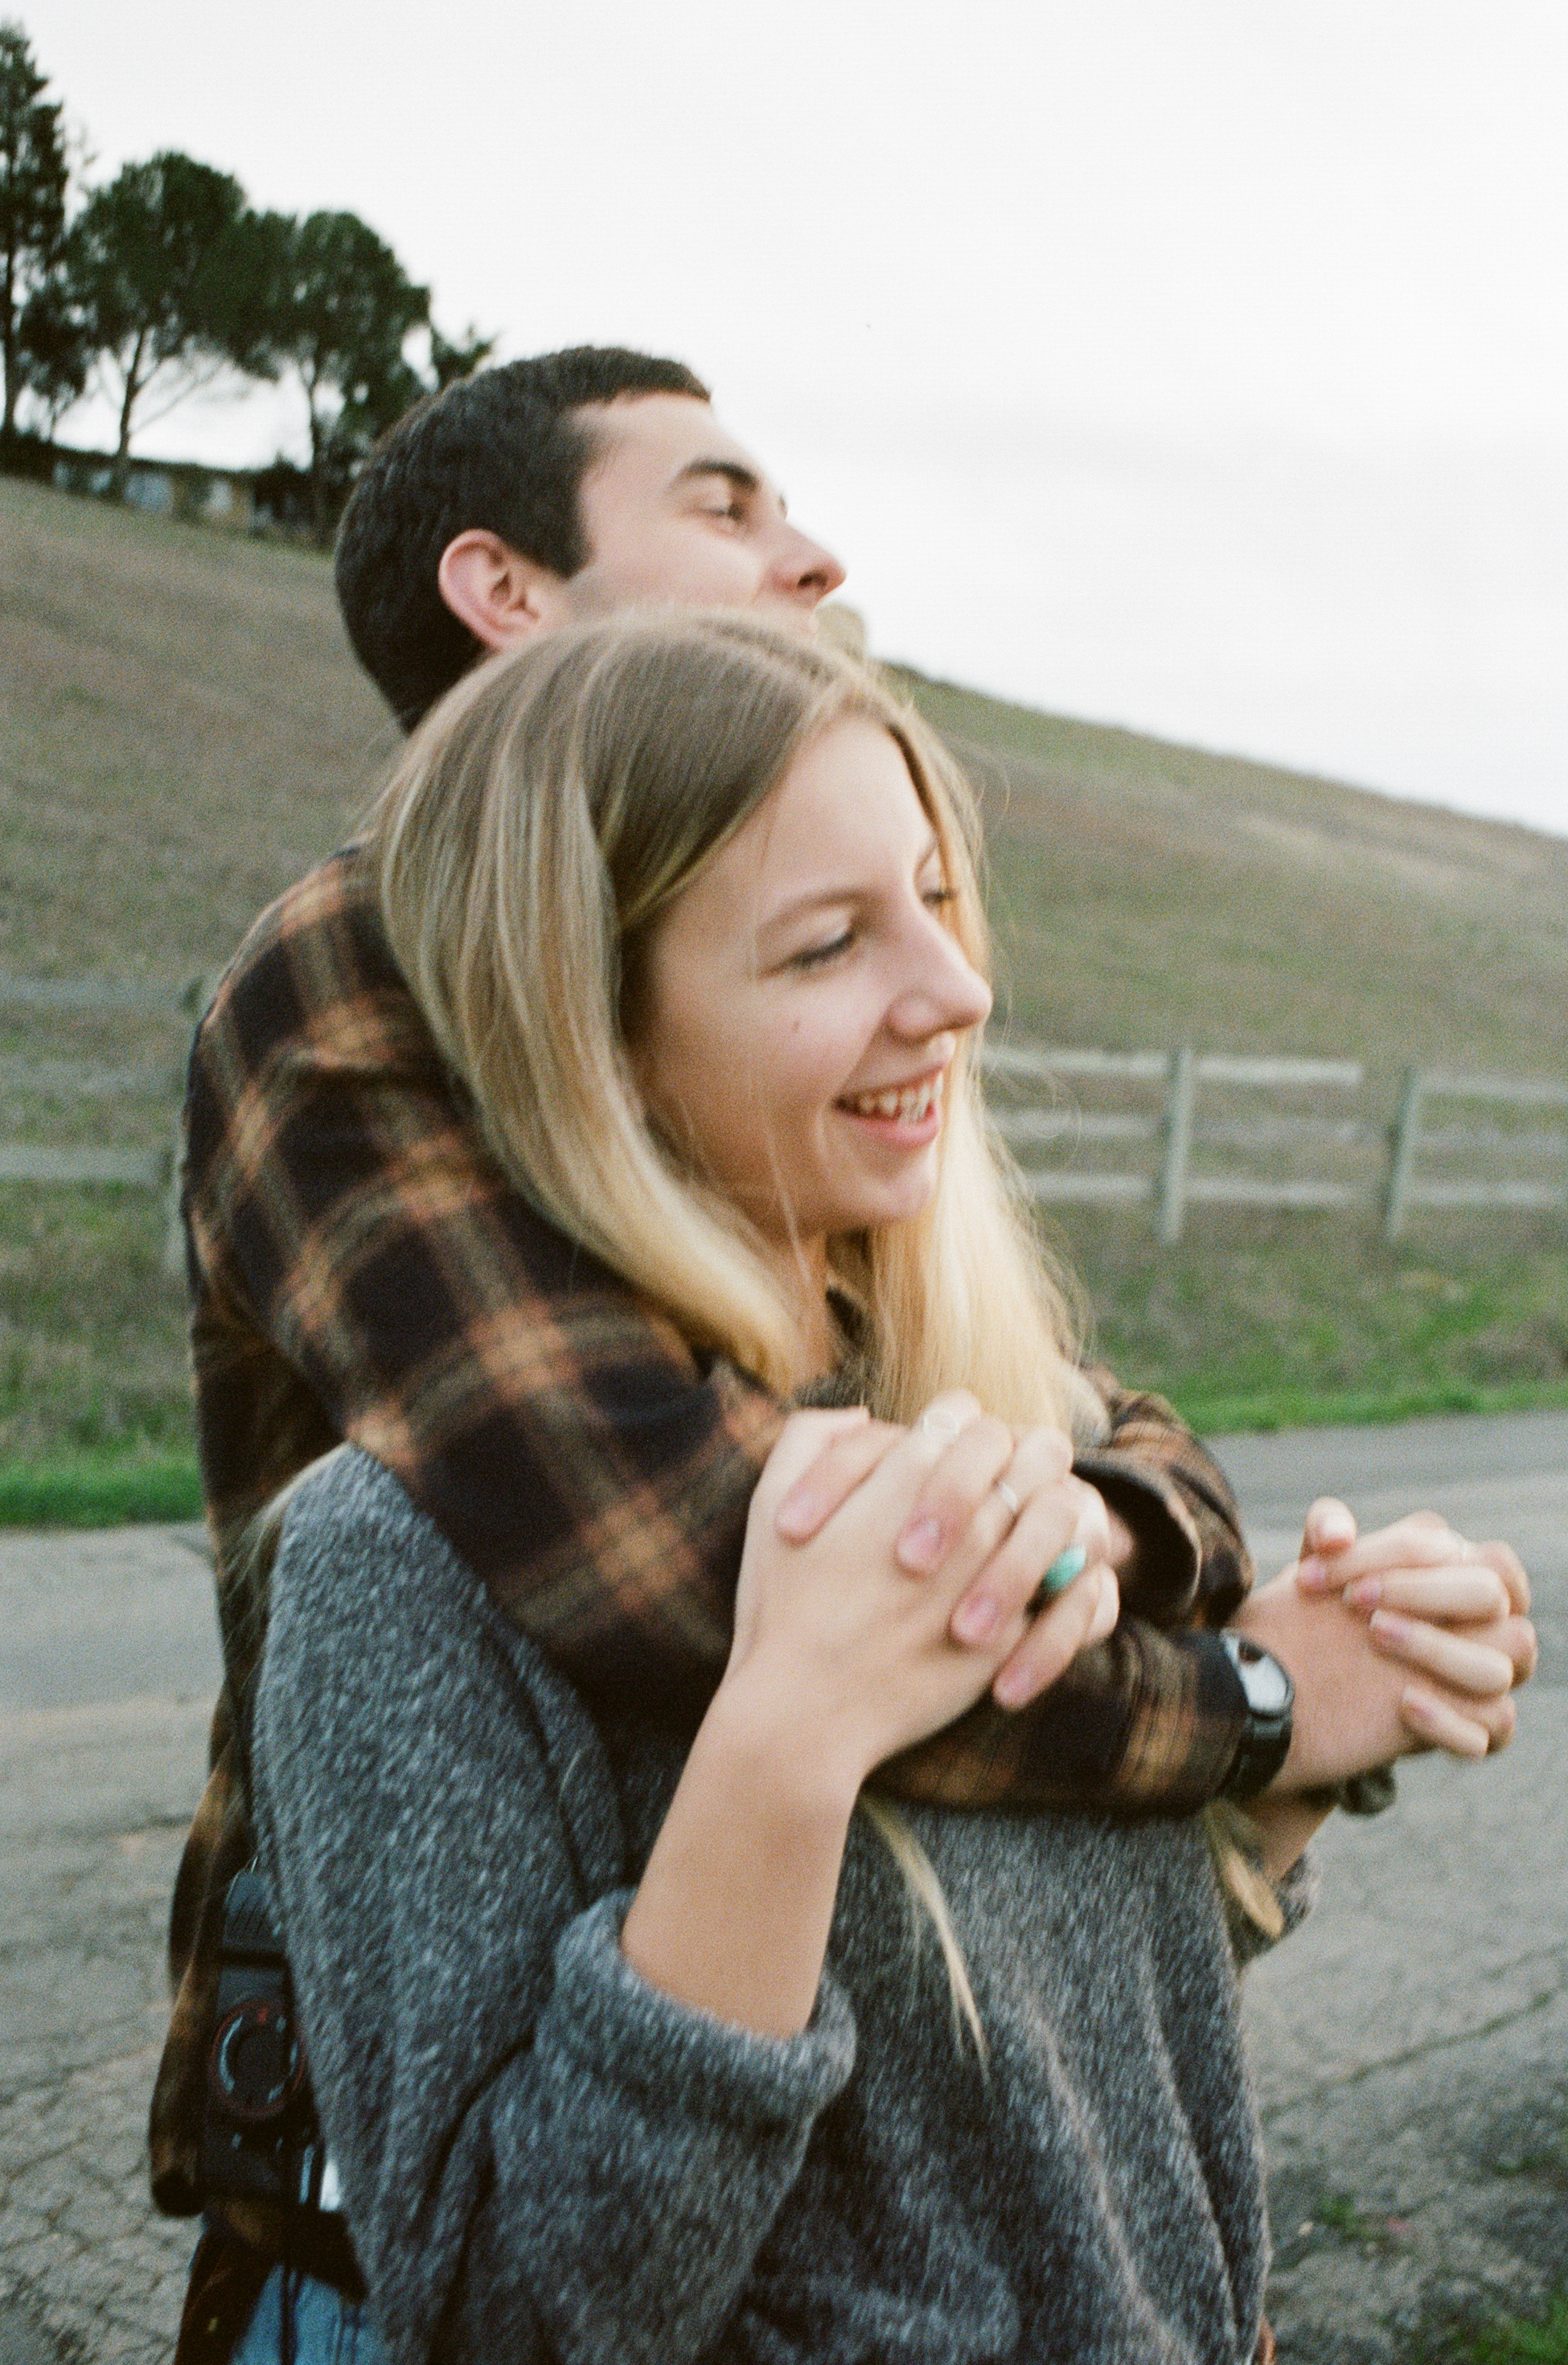 hannah&cole-california-film-jan2019-peytoncurry-000098780024.jpg